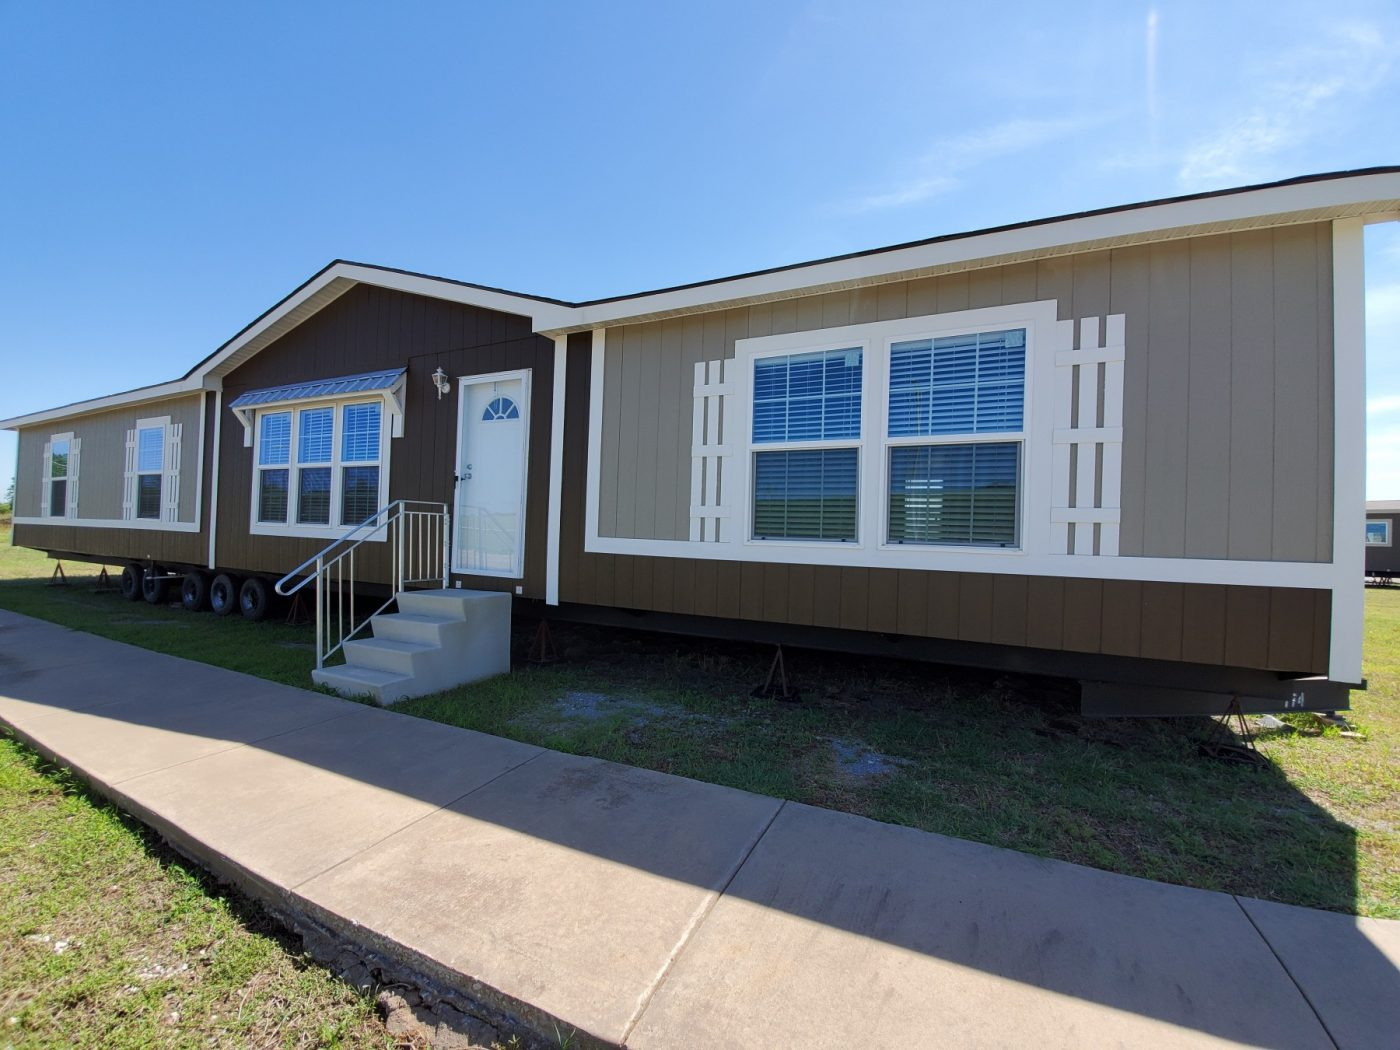 The Maverick - Nunn Homes - Manufactured Homes & Mobile ... on wonderland homes, laredo homes, forest hills homes, newport homes, repo clayton mobile homes, state homes, madonna homes, legacy 18 wide mobile homes,